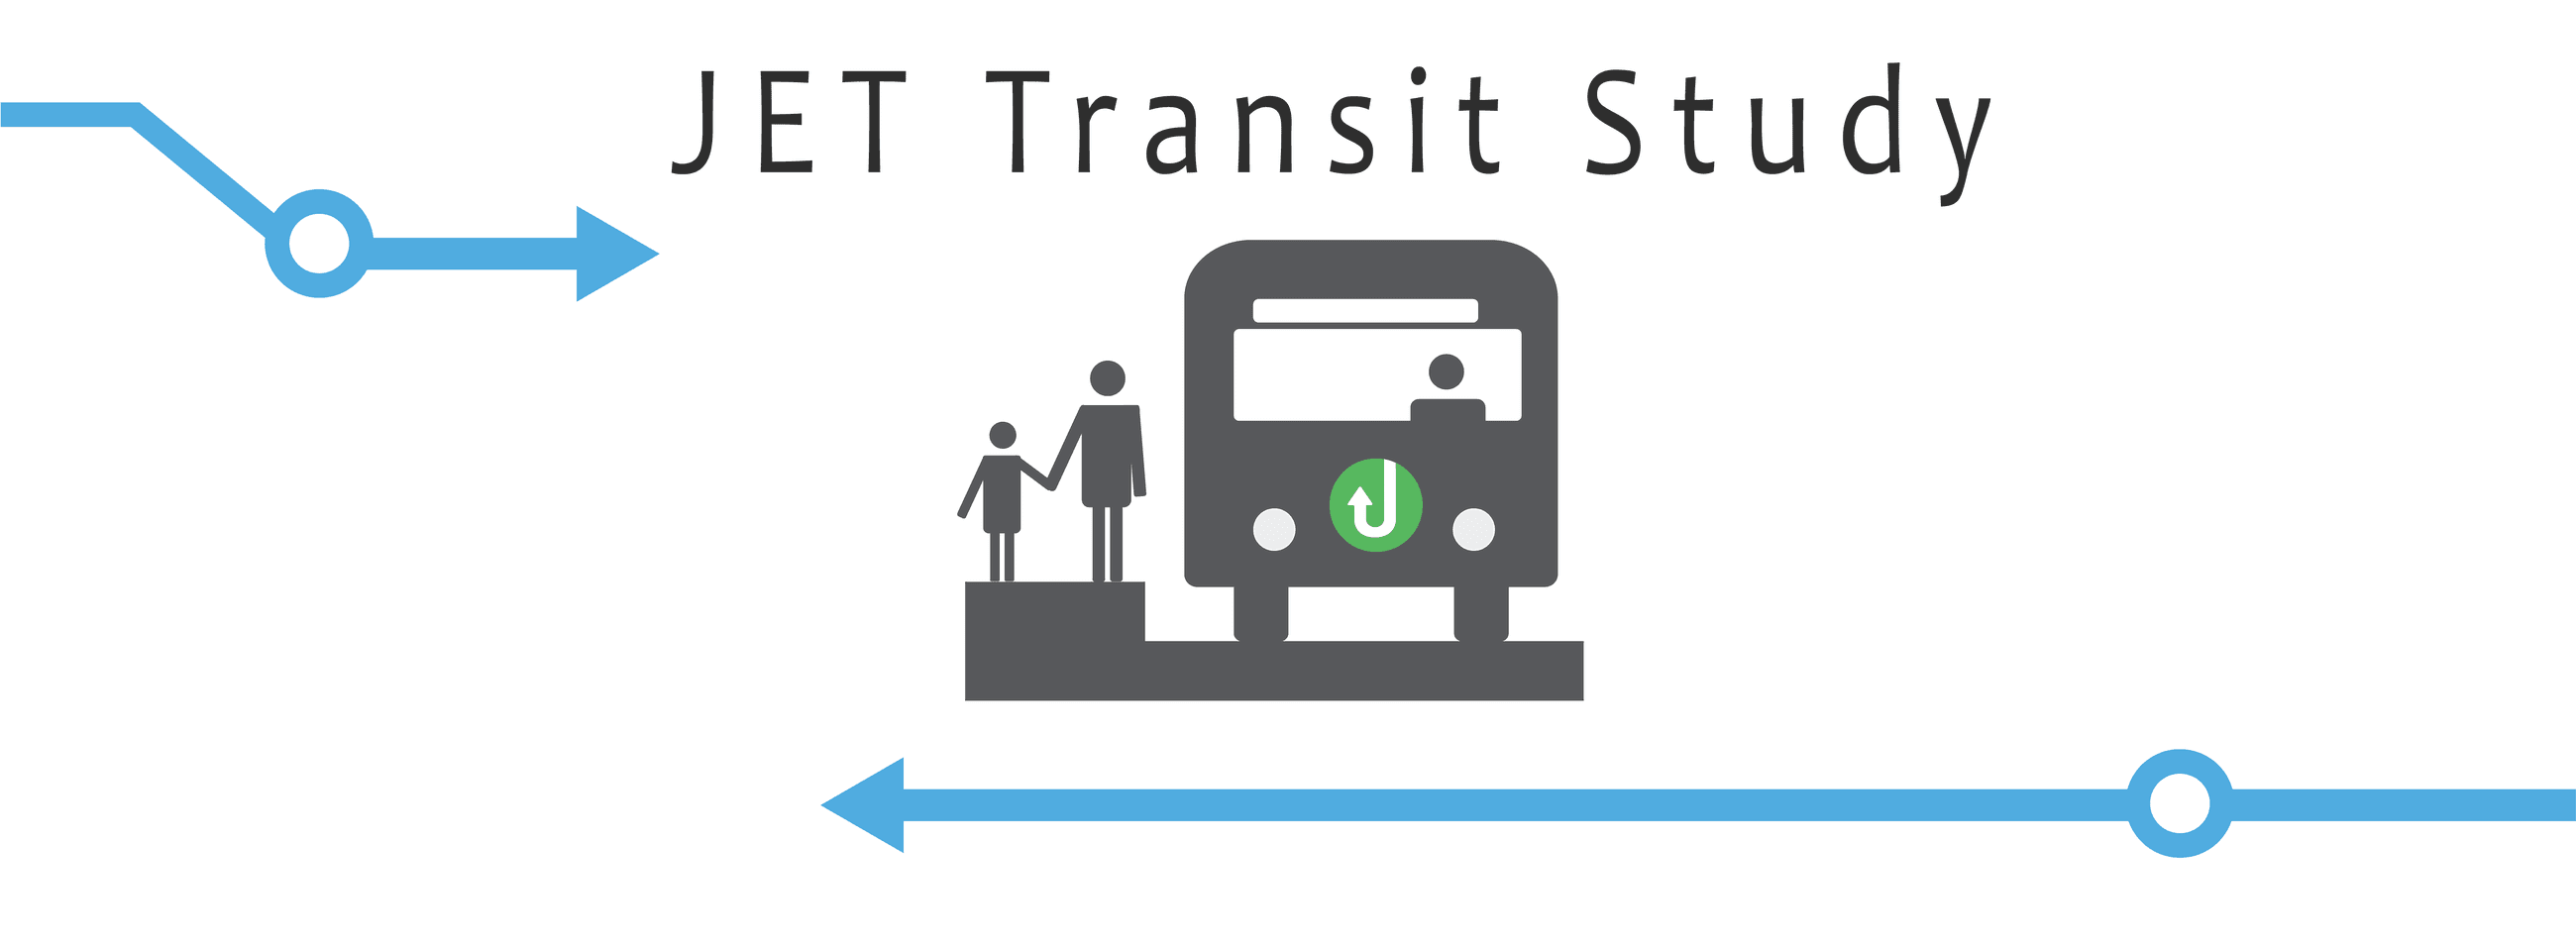 JET Transit Study Heading Graphic